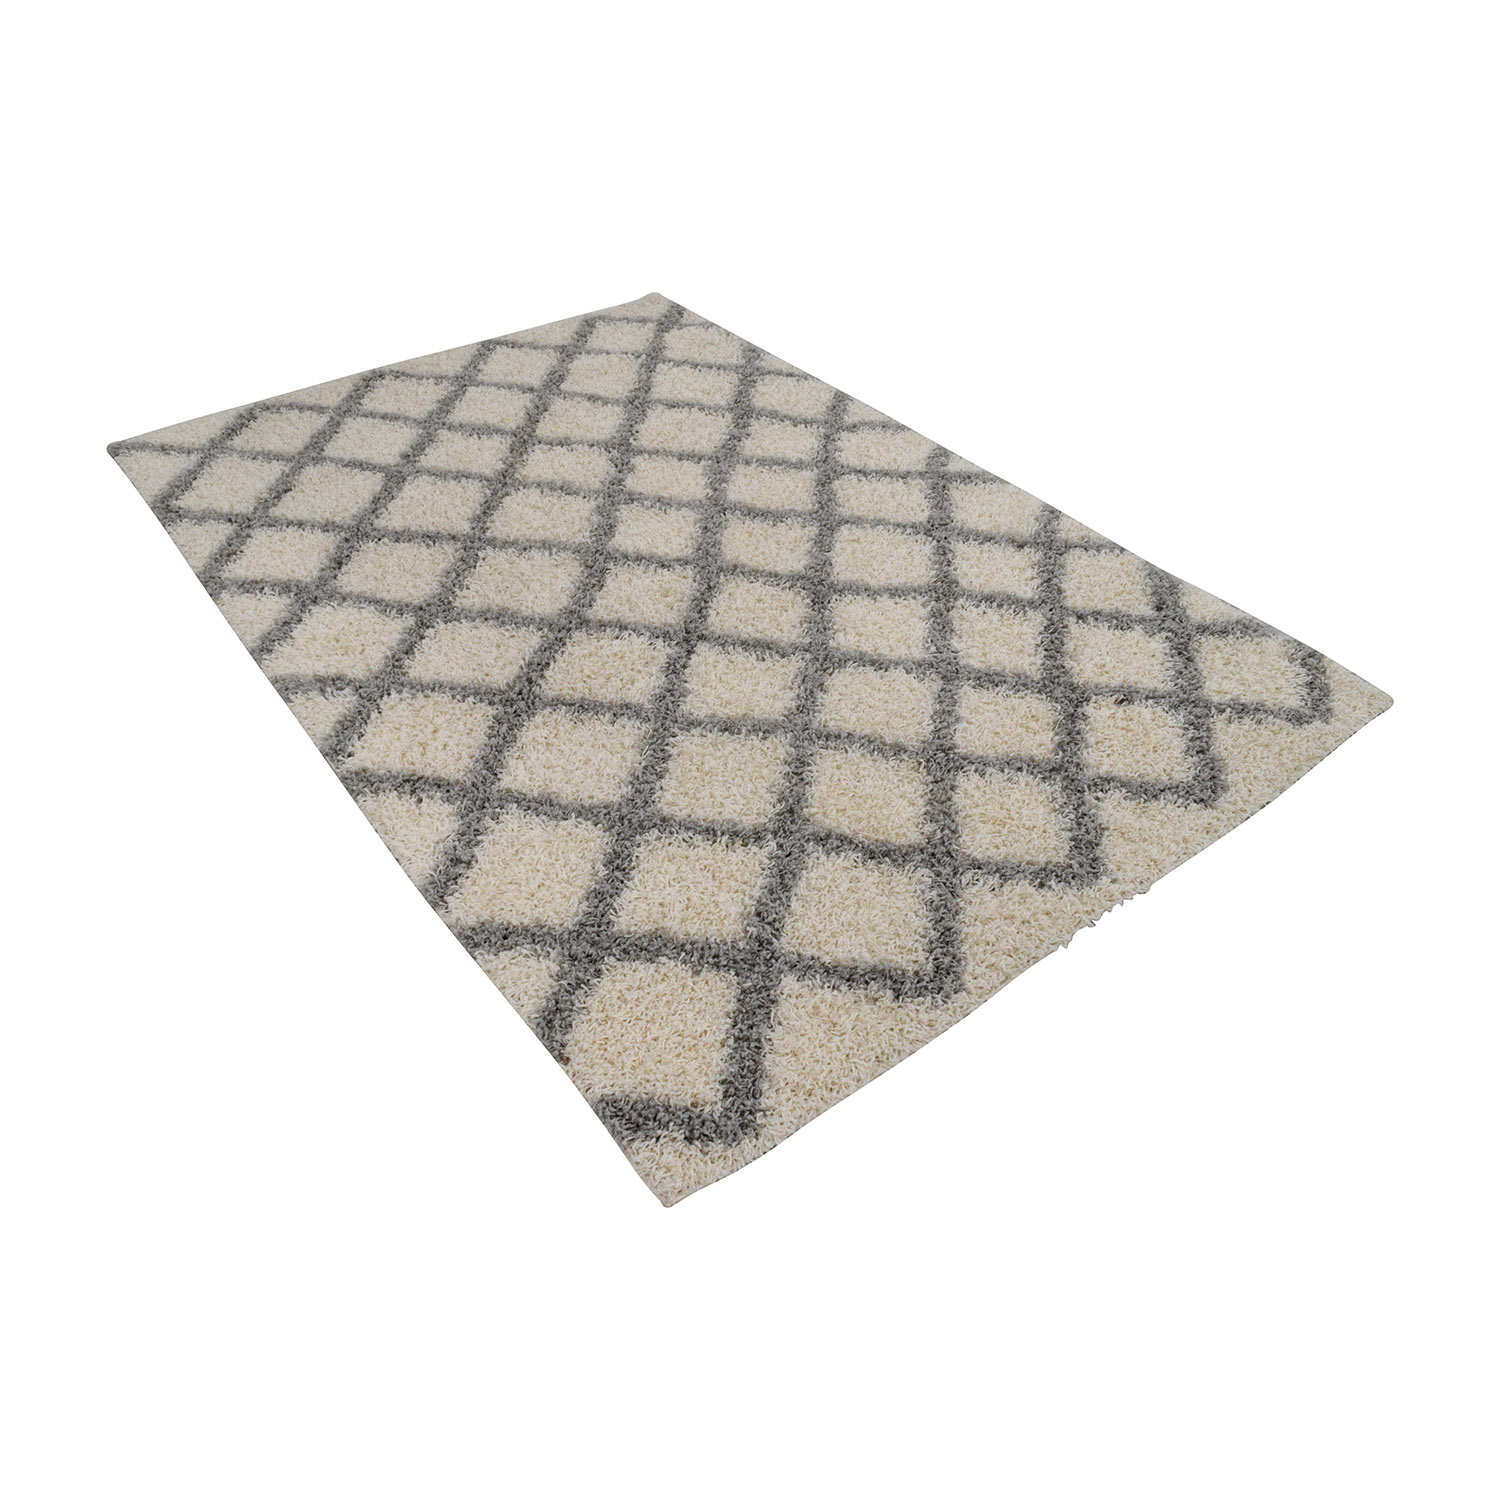 Safavieh Safavieh Dallas Shag Ivory and Grey Trellis Rug